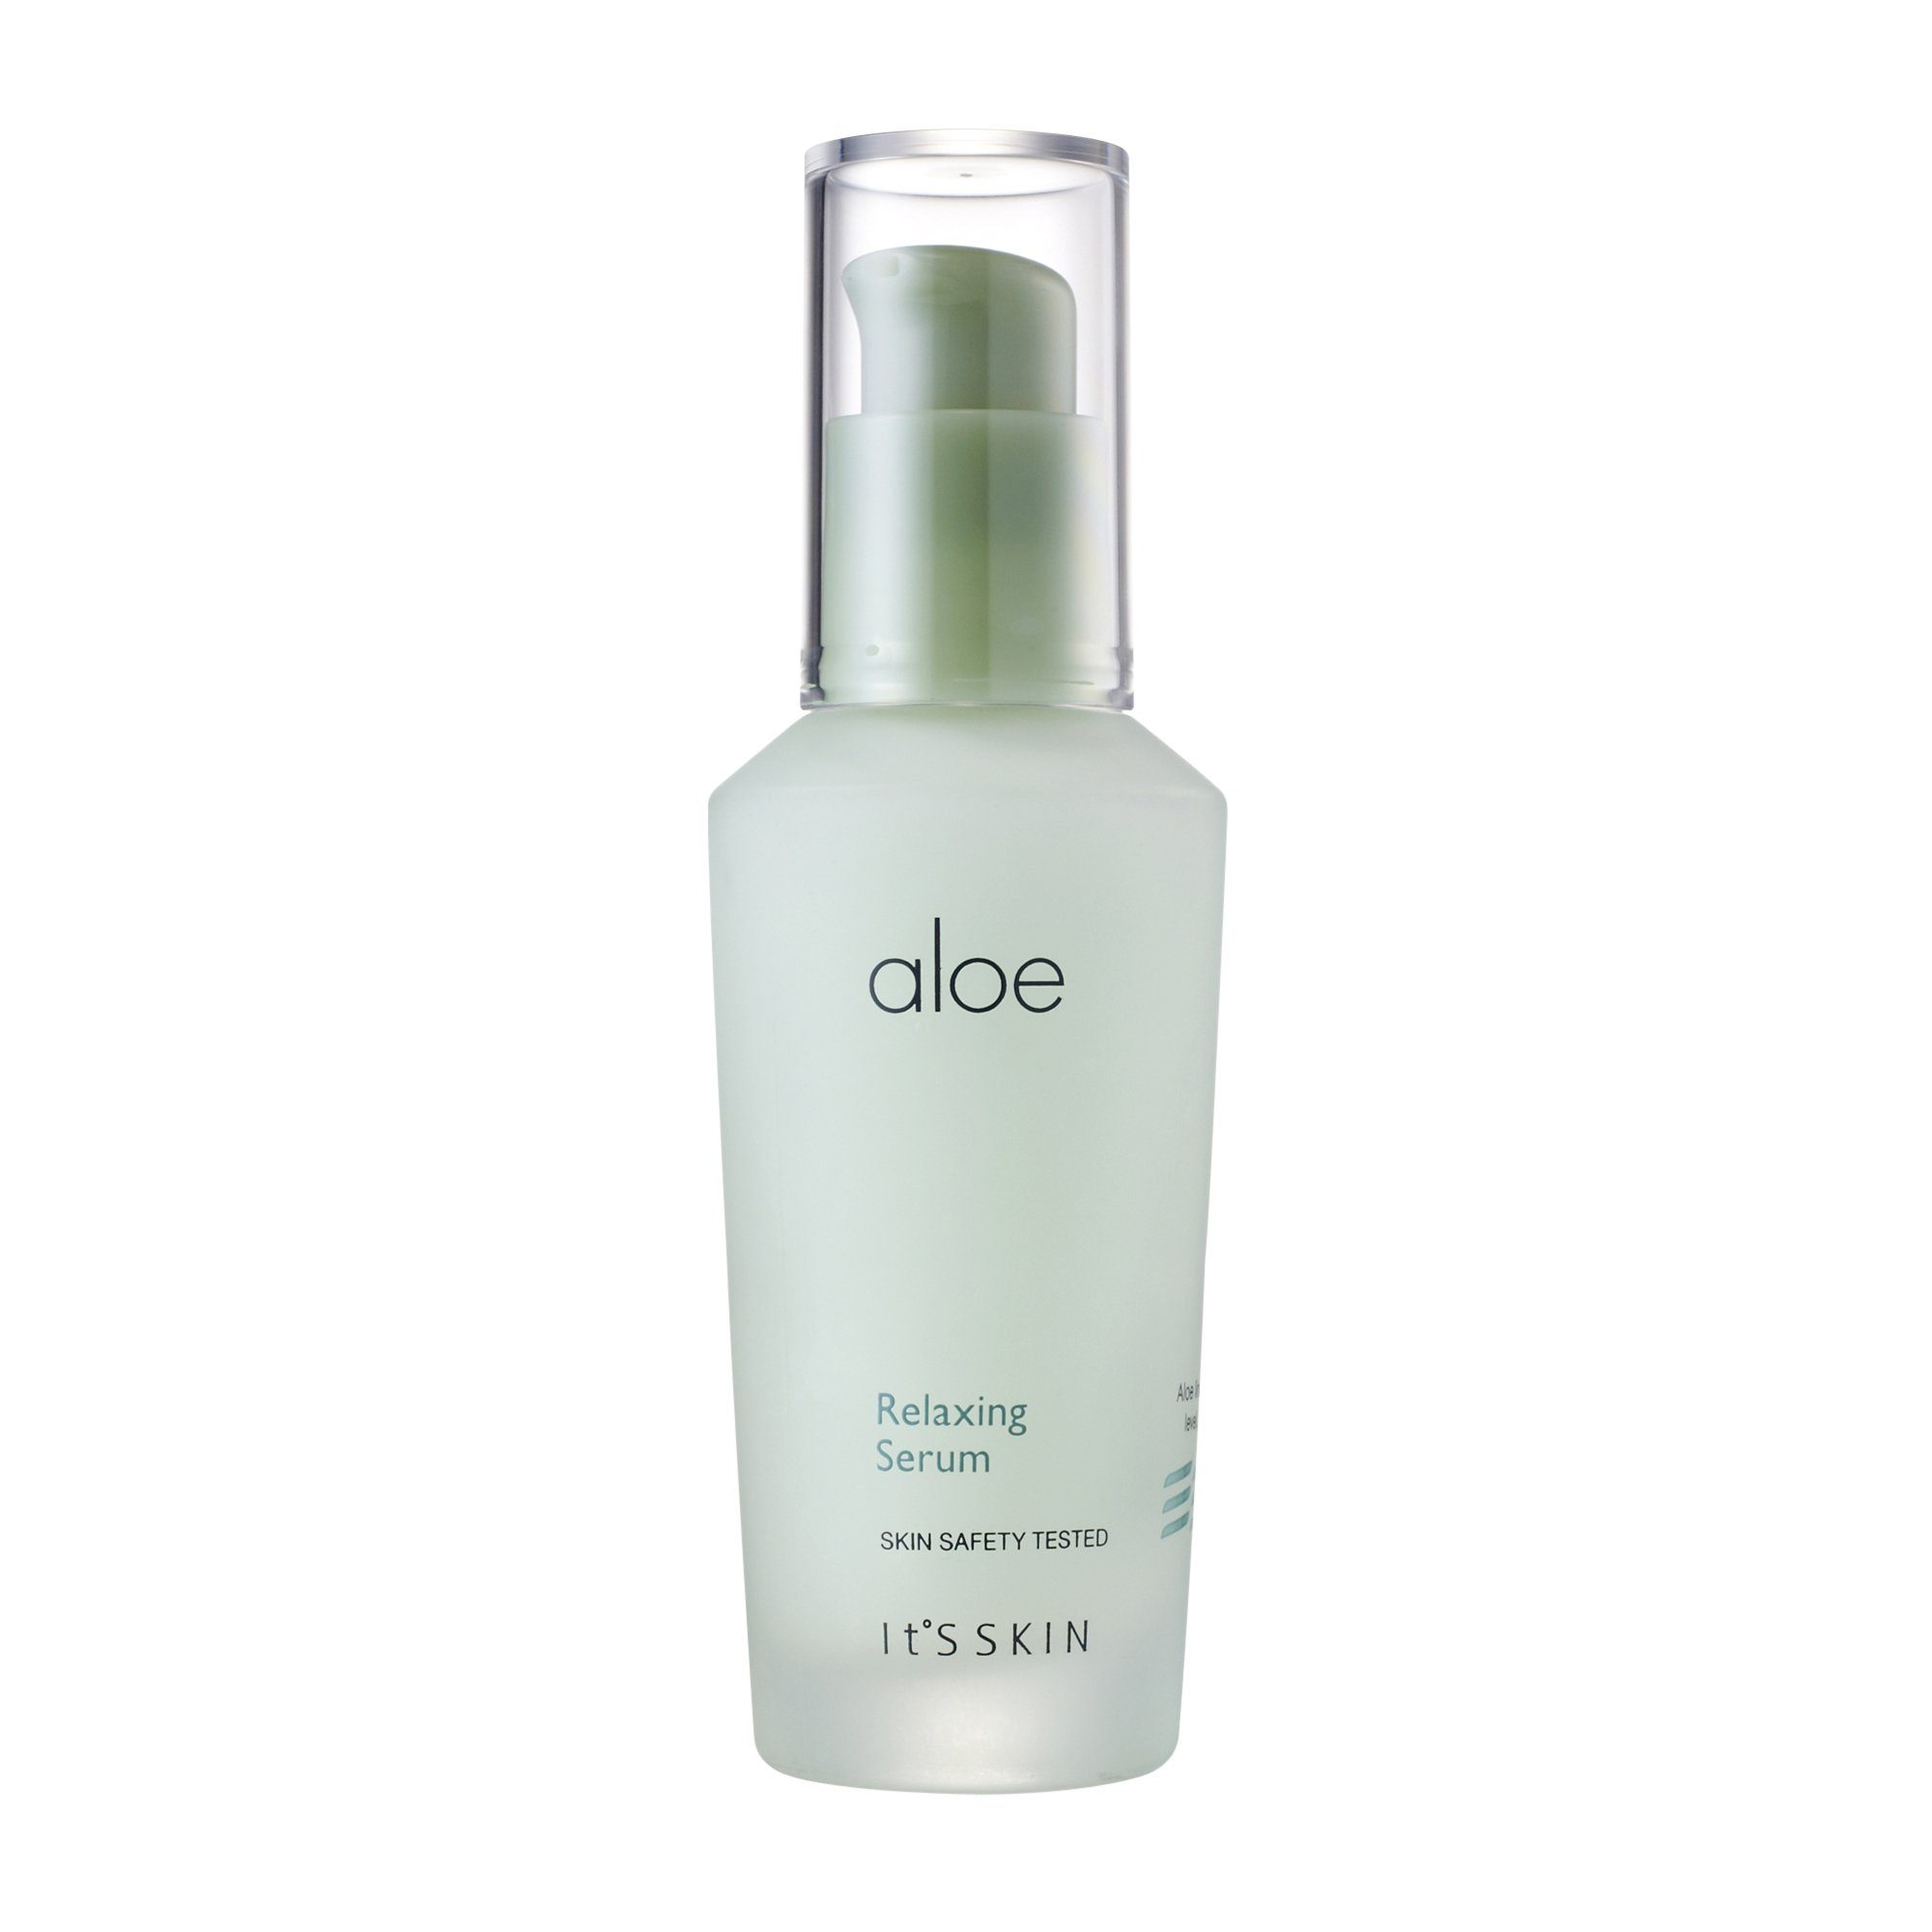 Health & Beauty > Personal Care > Cosmetics > Skin Care > Lotion & Moisturizer - Aloe Relaxing Serum Serum Do Twarzy 40 Ml